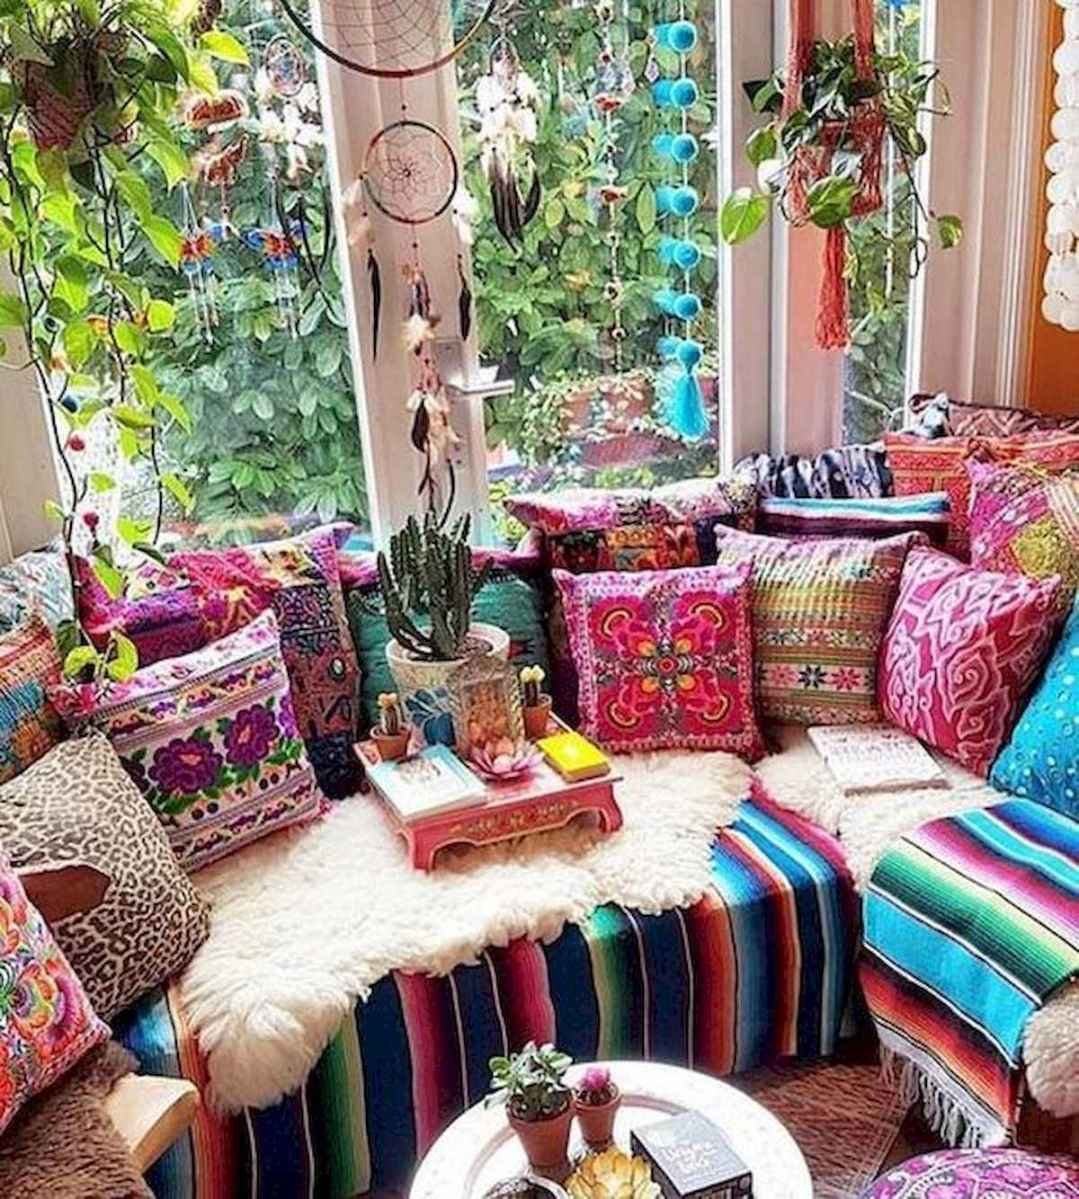 90+ Fantastic Colorful Apartment Decor Ideas And Remodel for Summer Project (16)